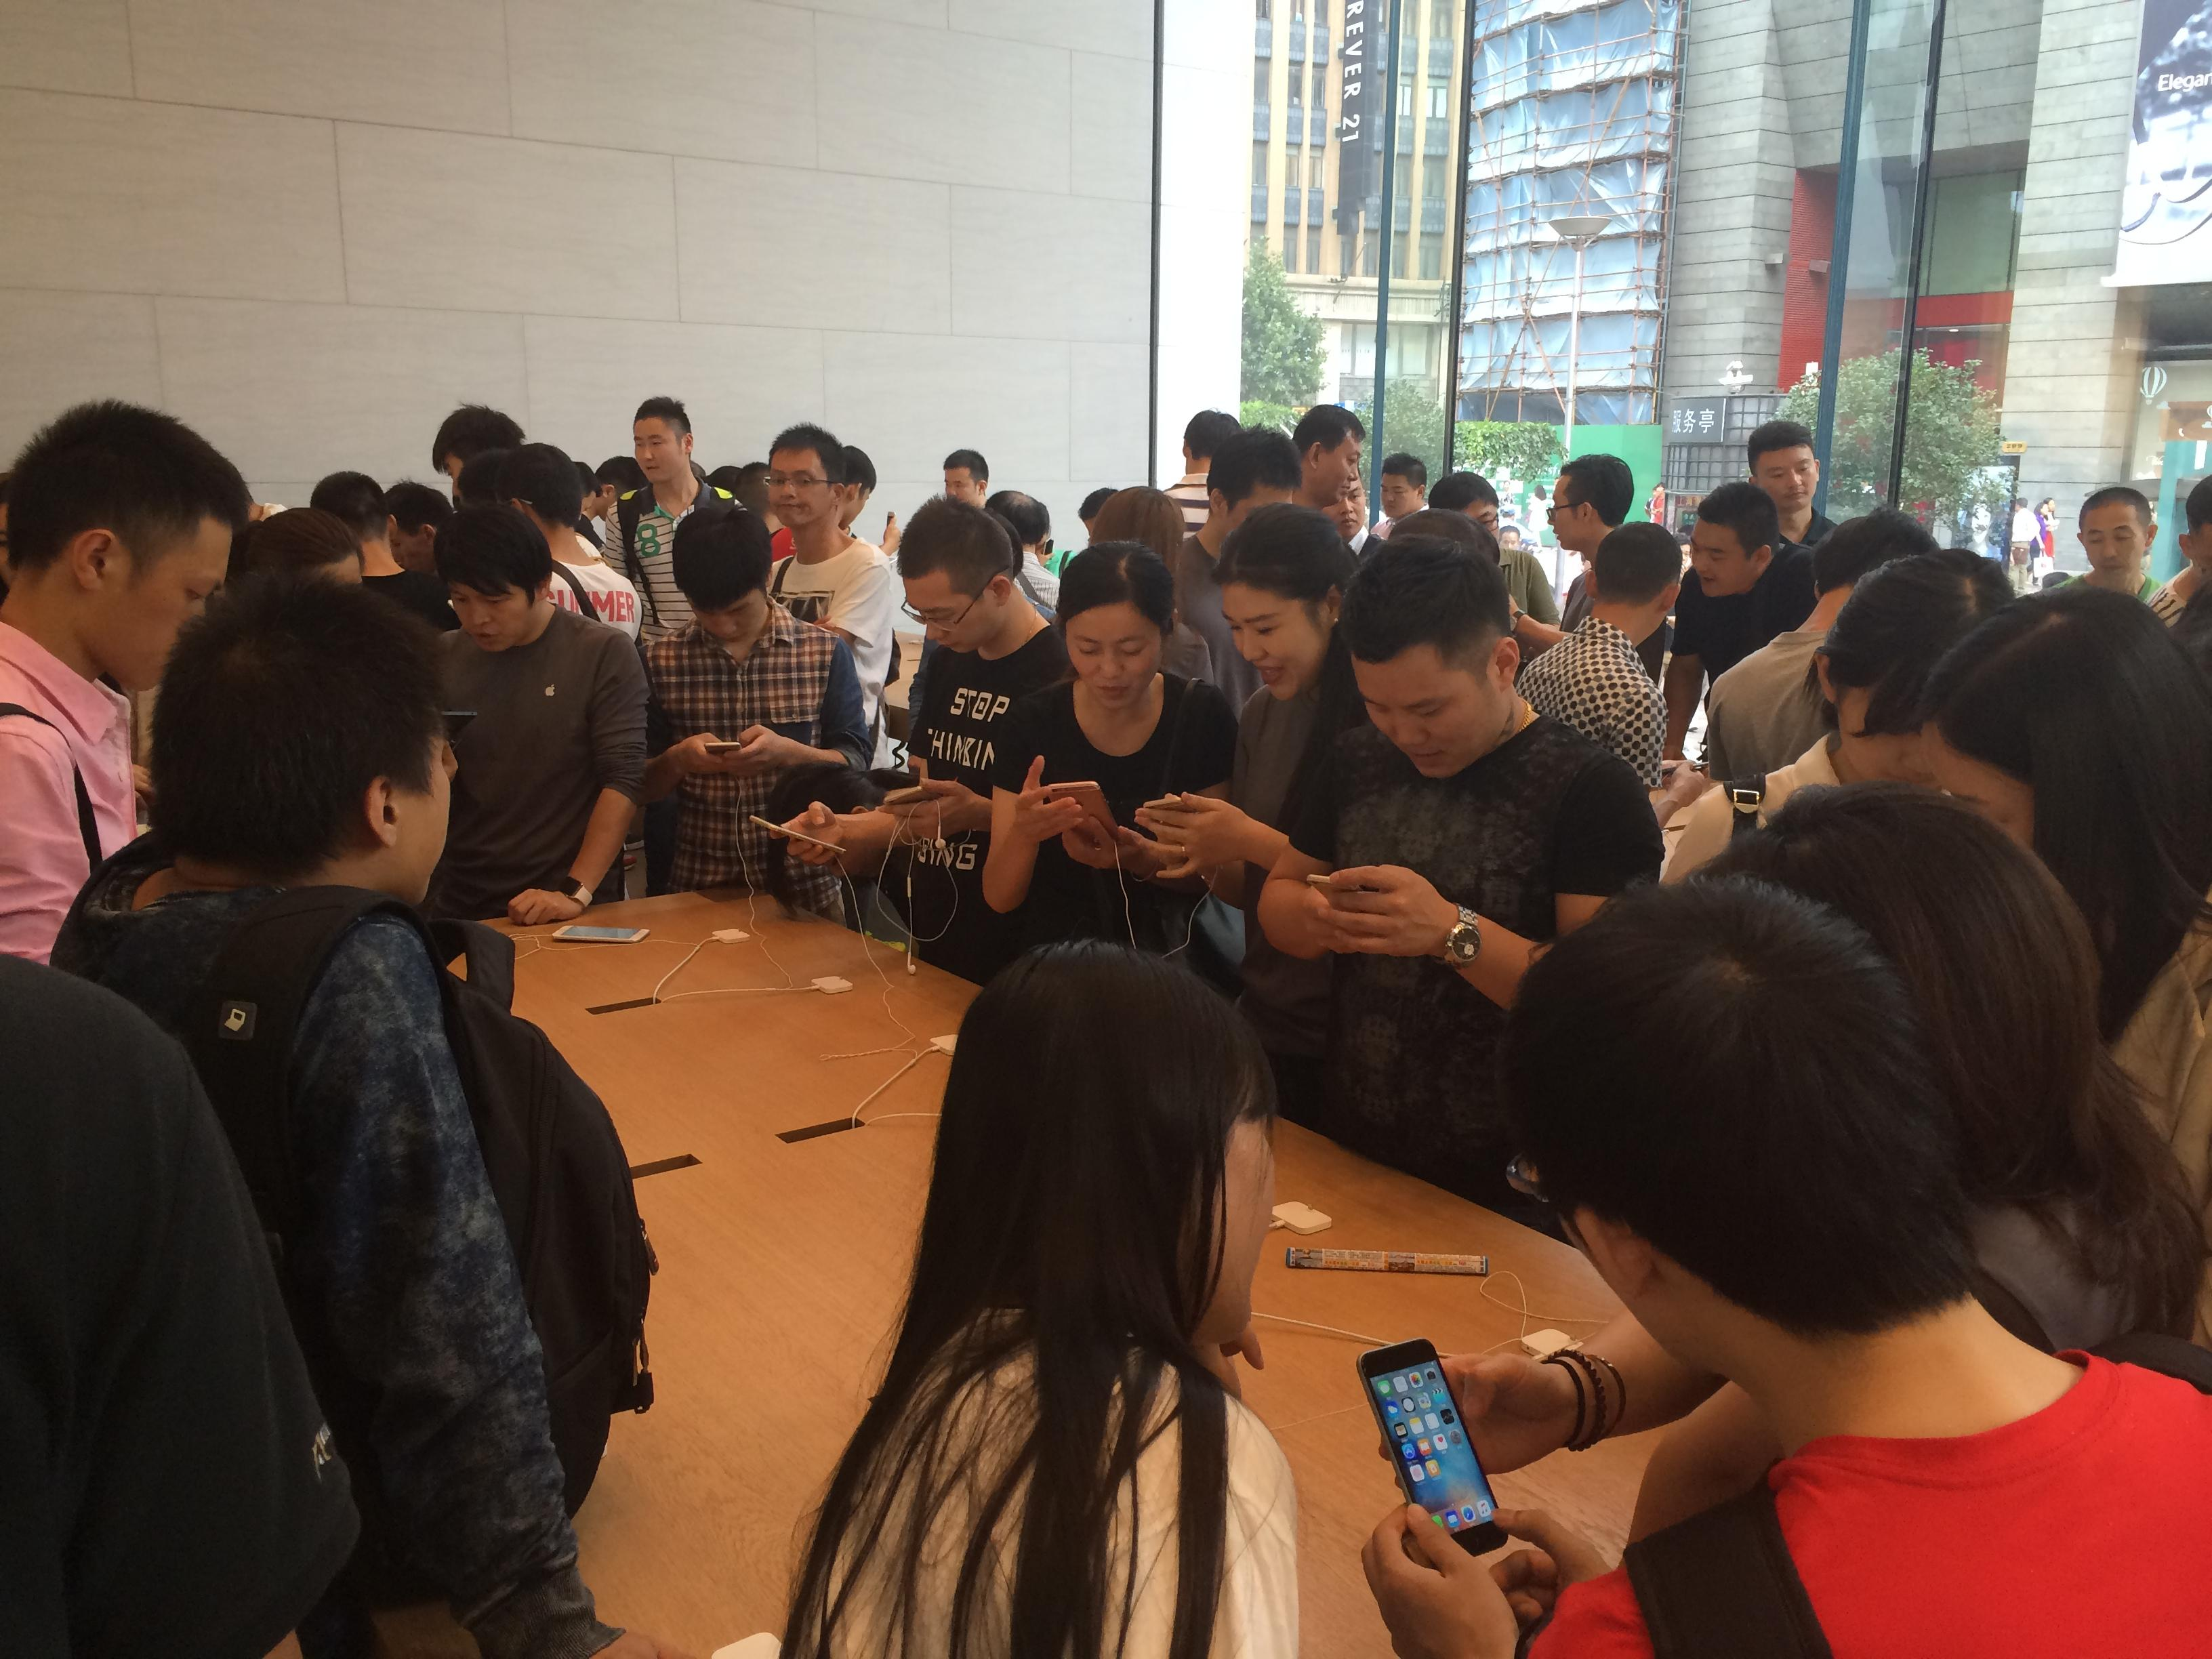 iPhone Shoppers In Shanghai, China